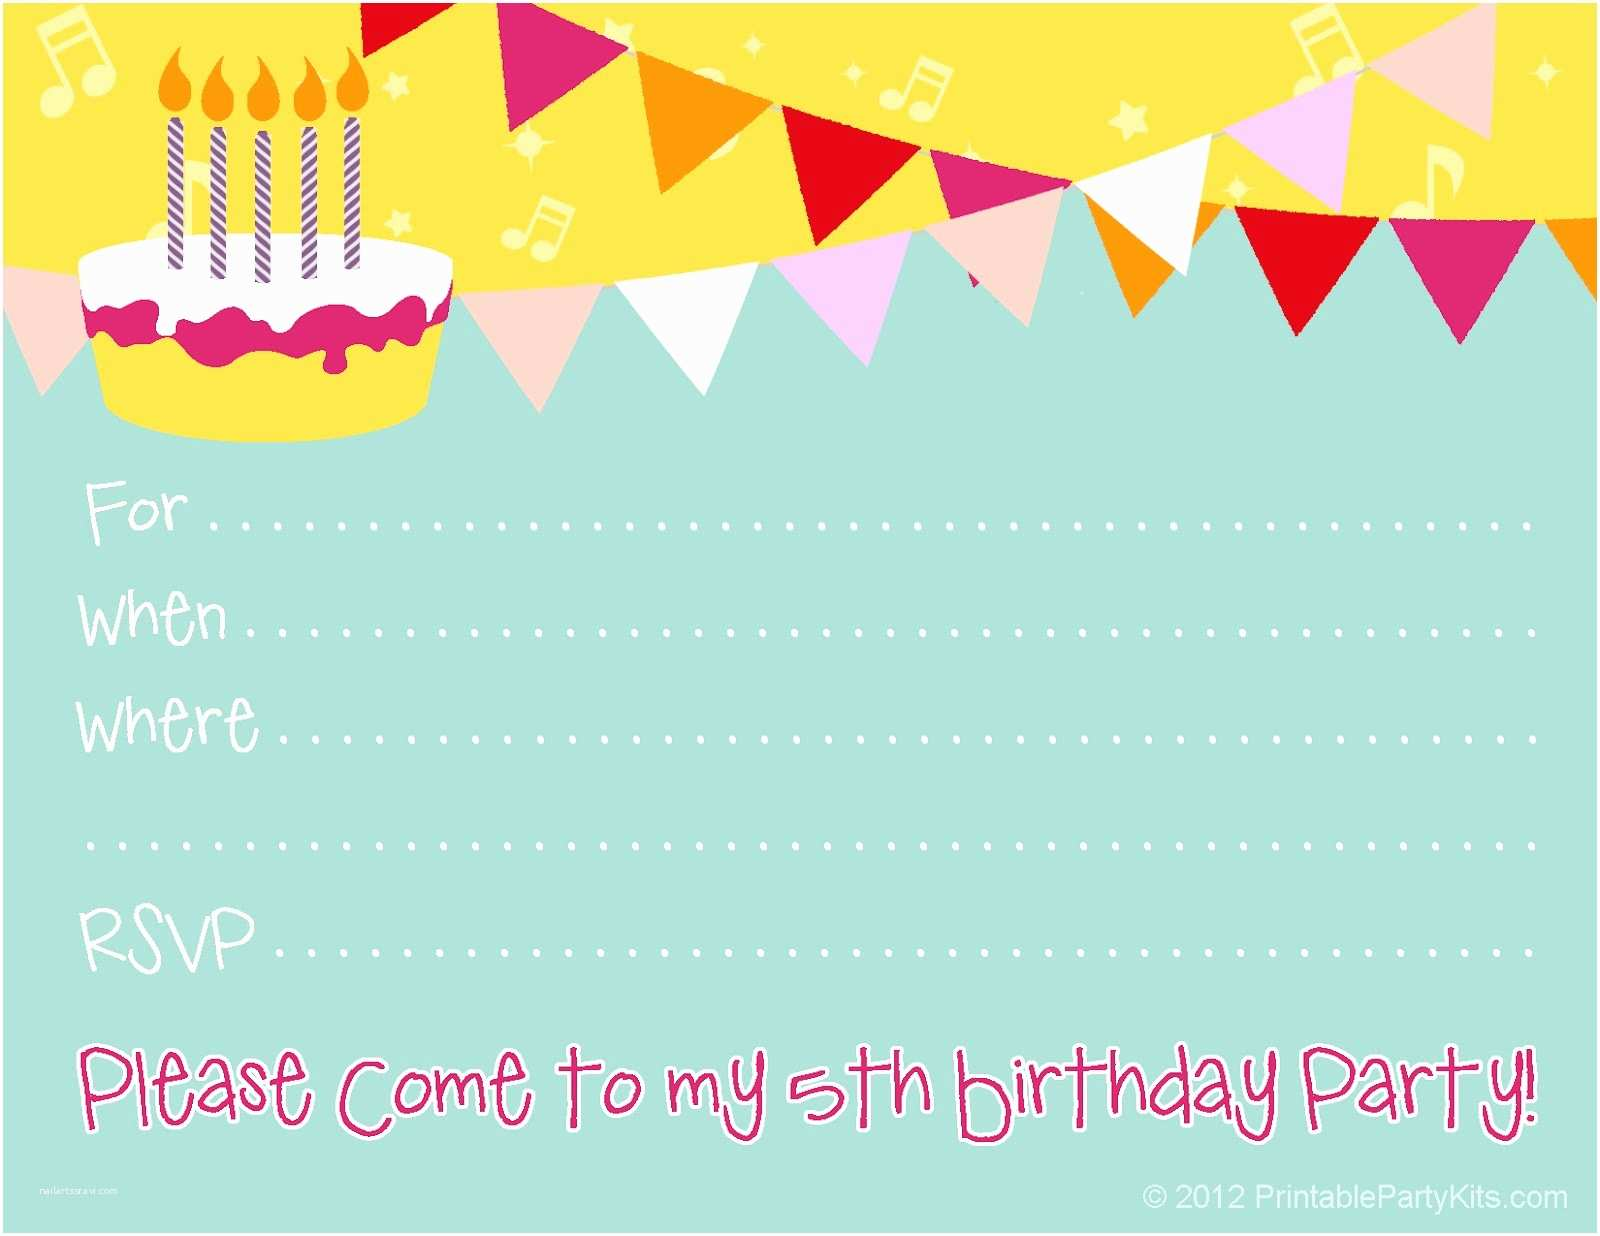 Free Printable Birthday Party Invitations Free Printable Party Invitations Free Printable Invite